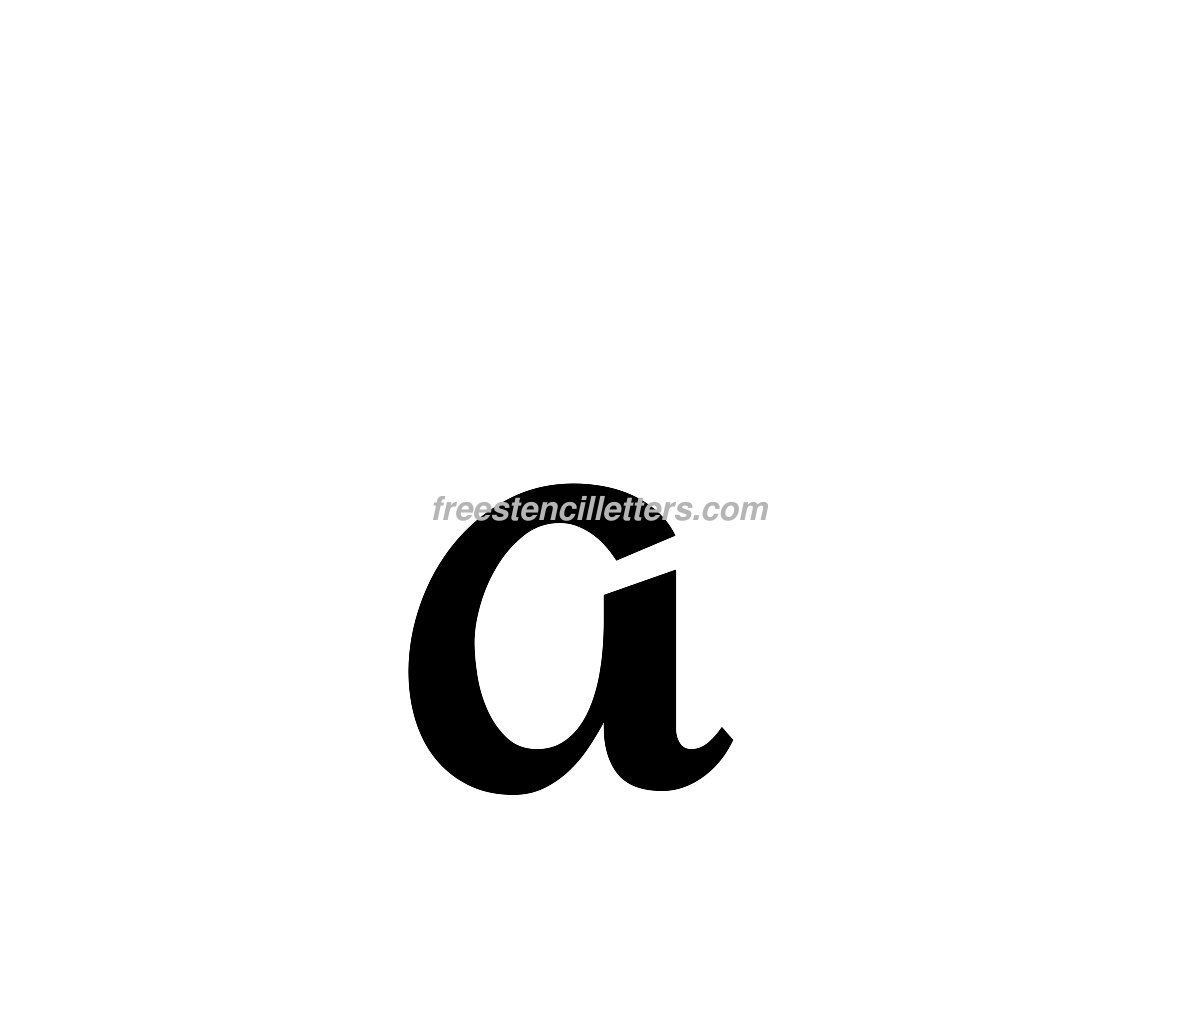 Print Lowercase V Letter Stencil  Free Stencil Letters